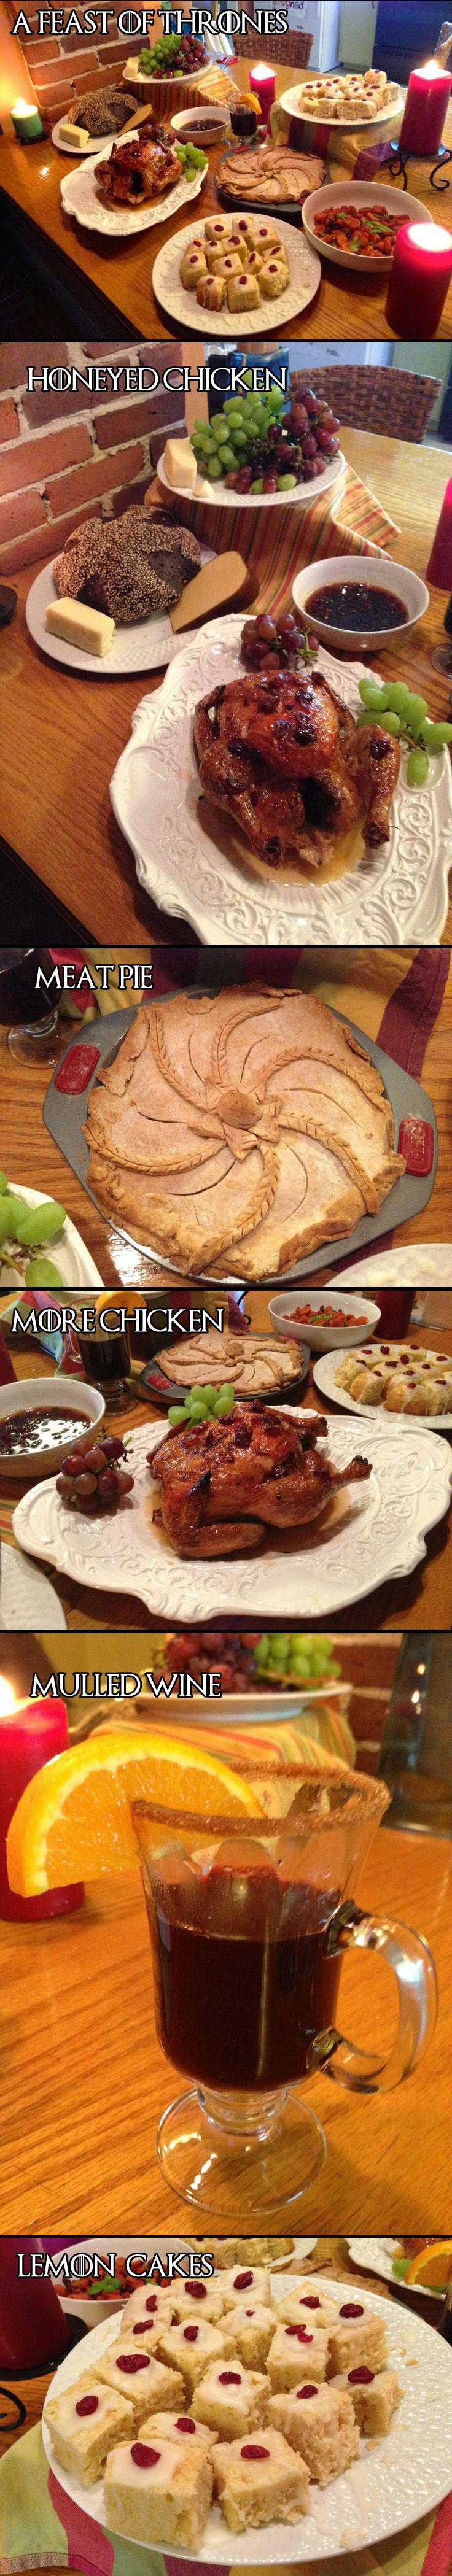 MENU IDEAS: A Feast of Thrones.  Must have chicken, meat pies, mulled wine and lemon cakes. Medieval Halloween Game of Thrones Gathering Party Theme & Decorating Ideas